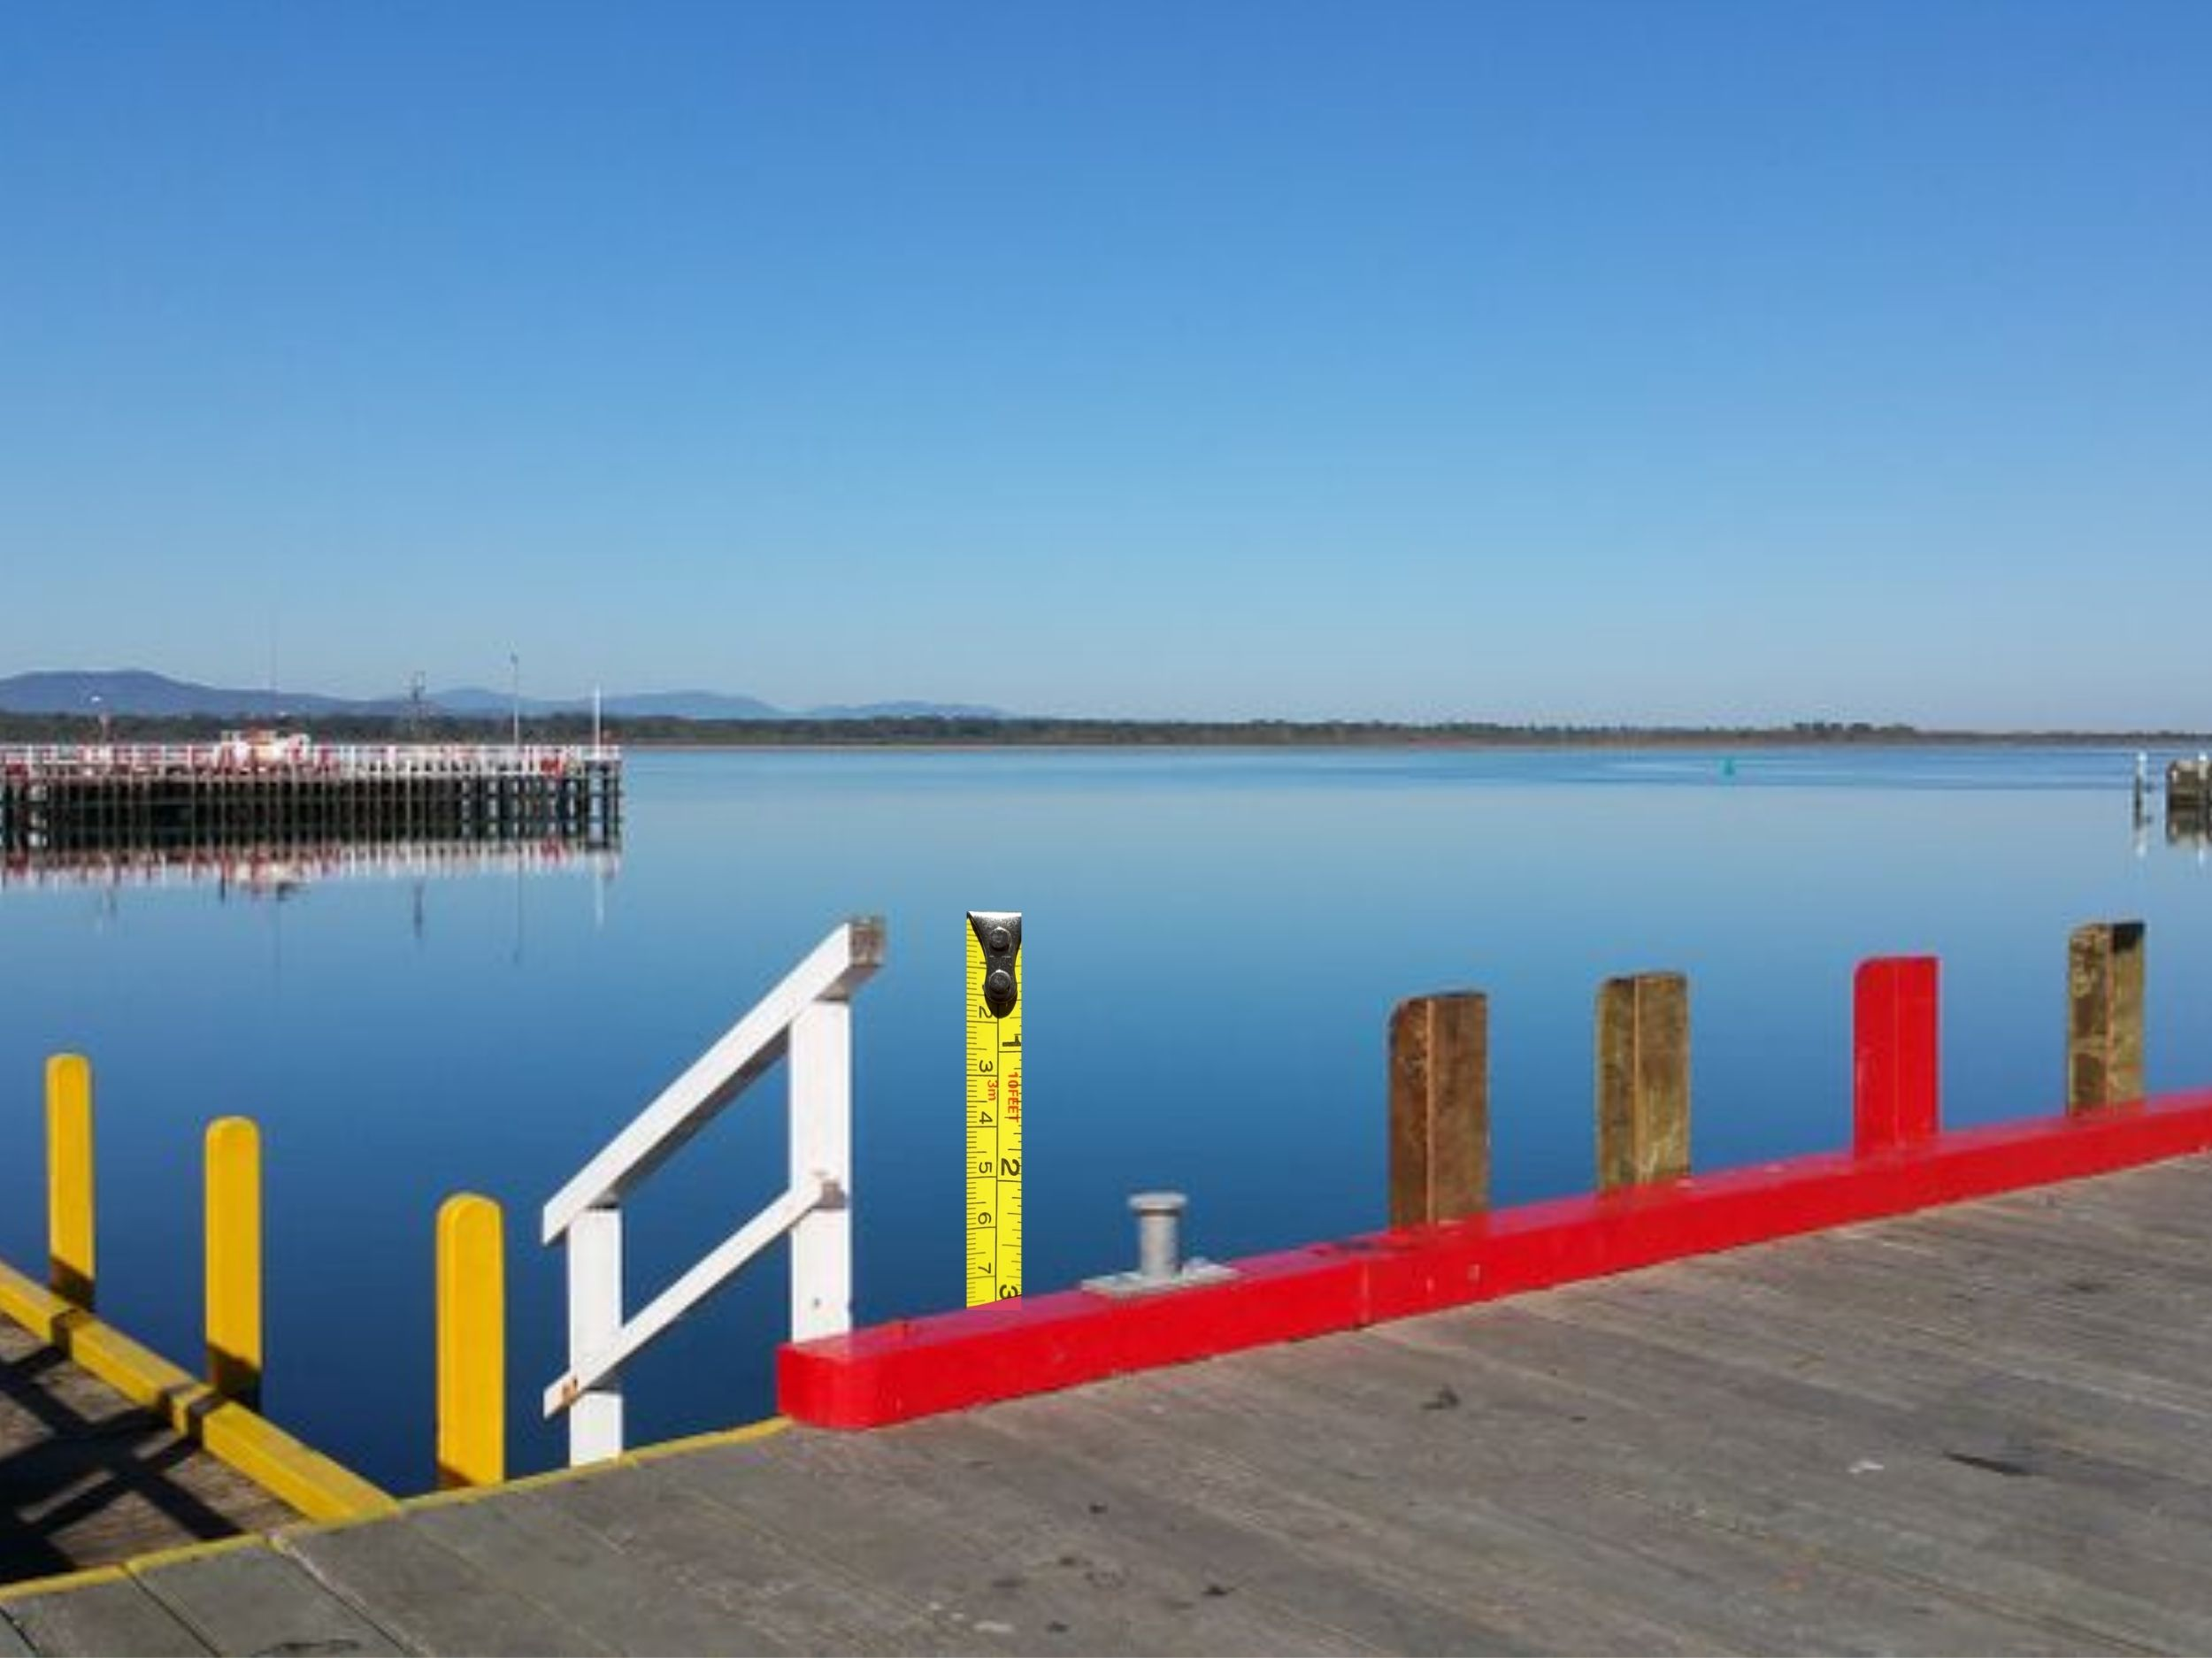 measure tape superimposed on wharf scene